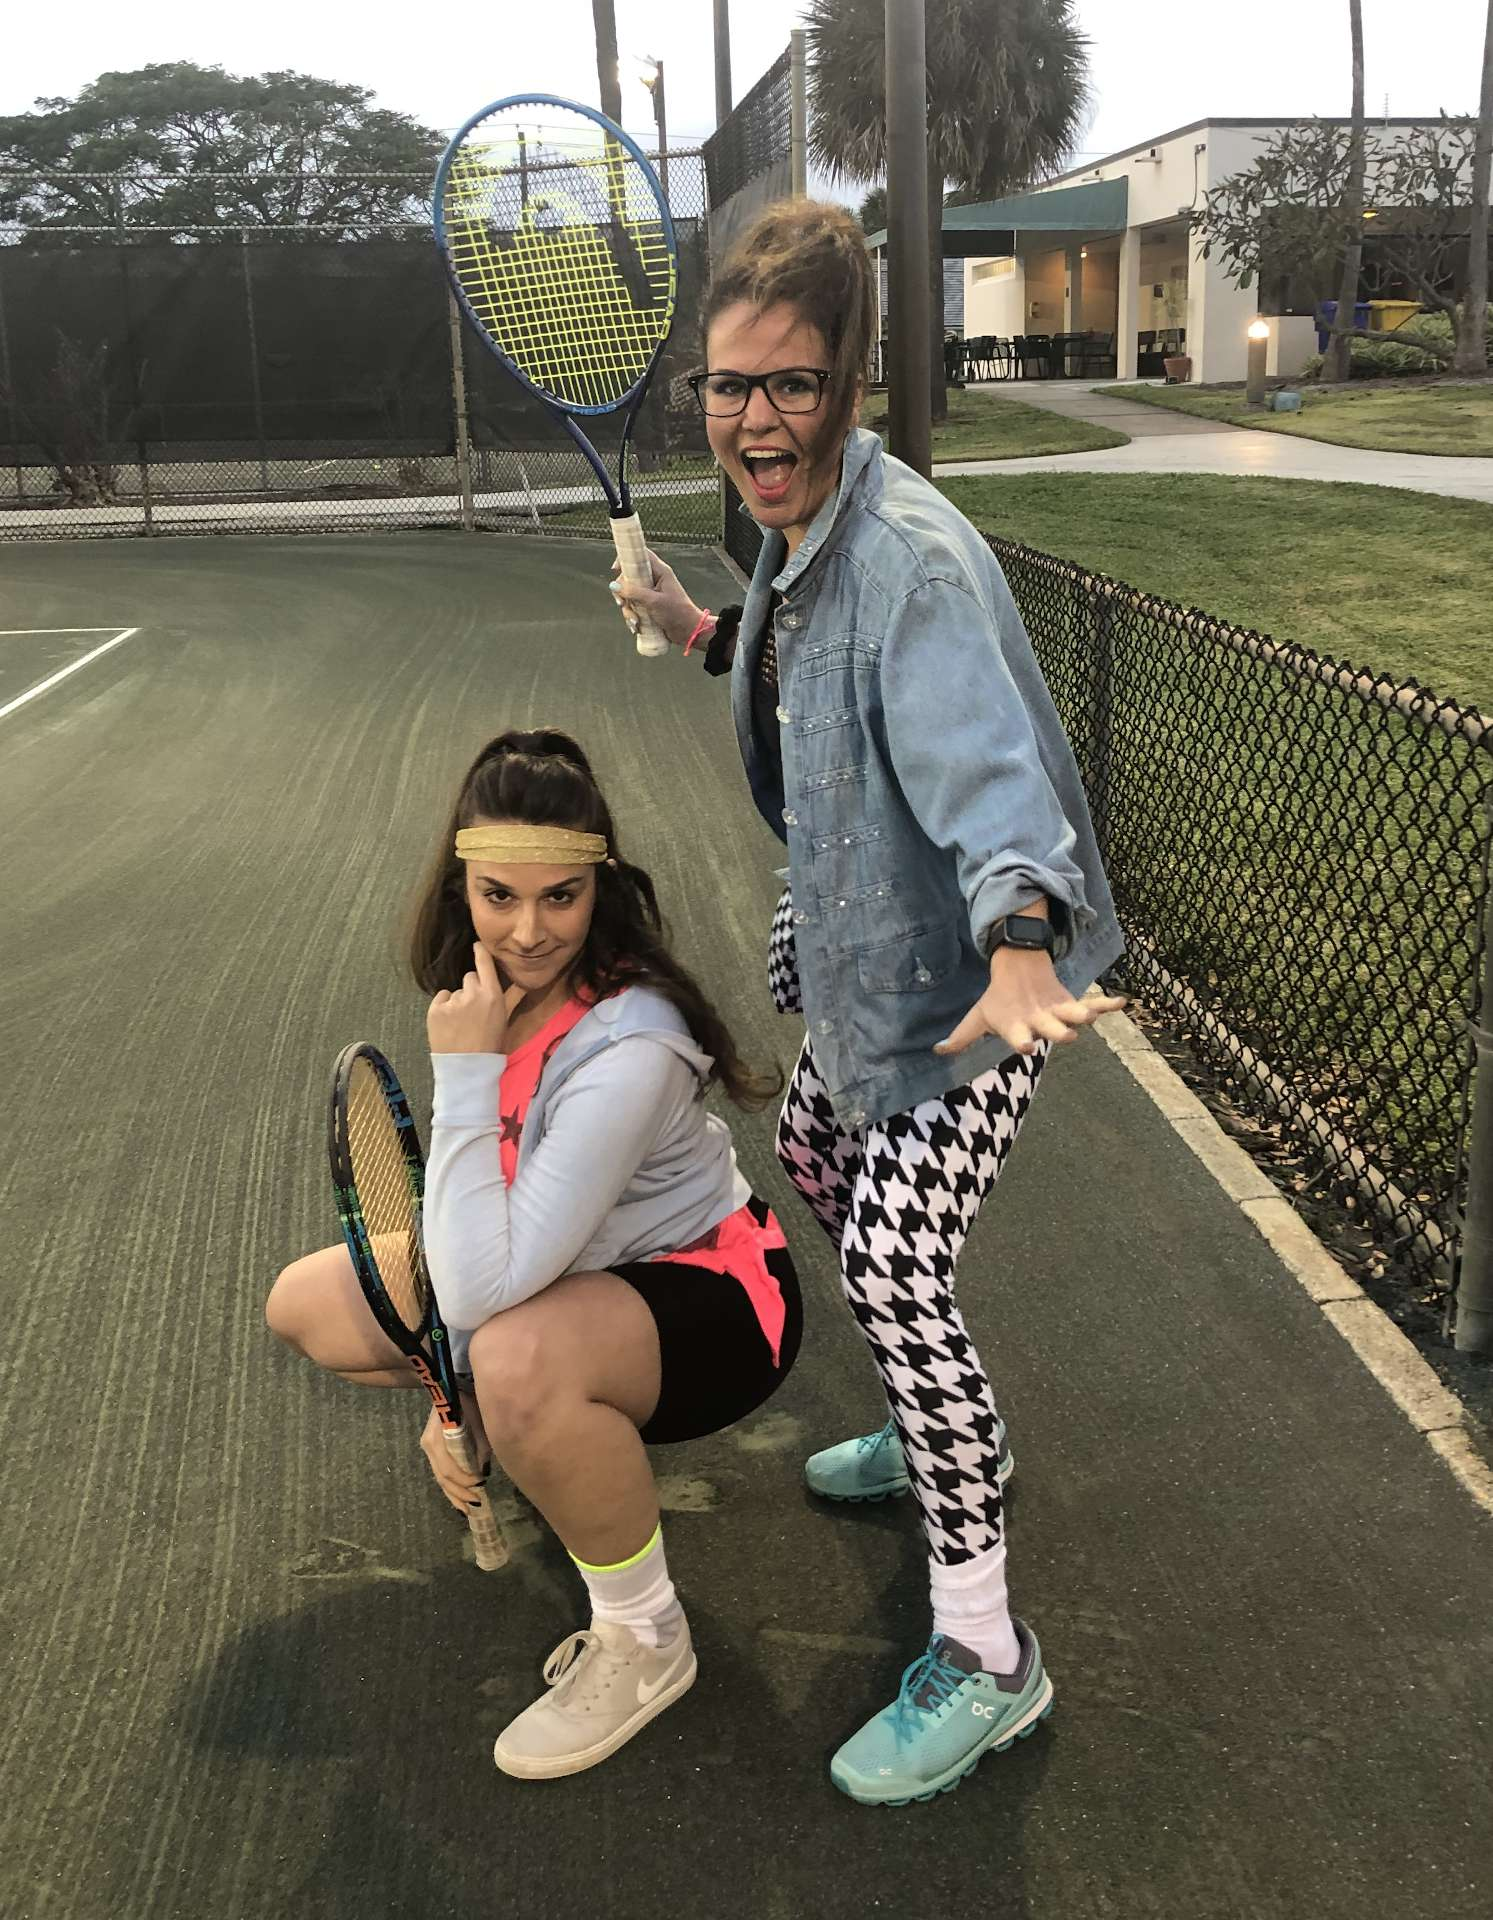 80s tennis night at Millennial Tennis